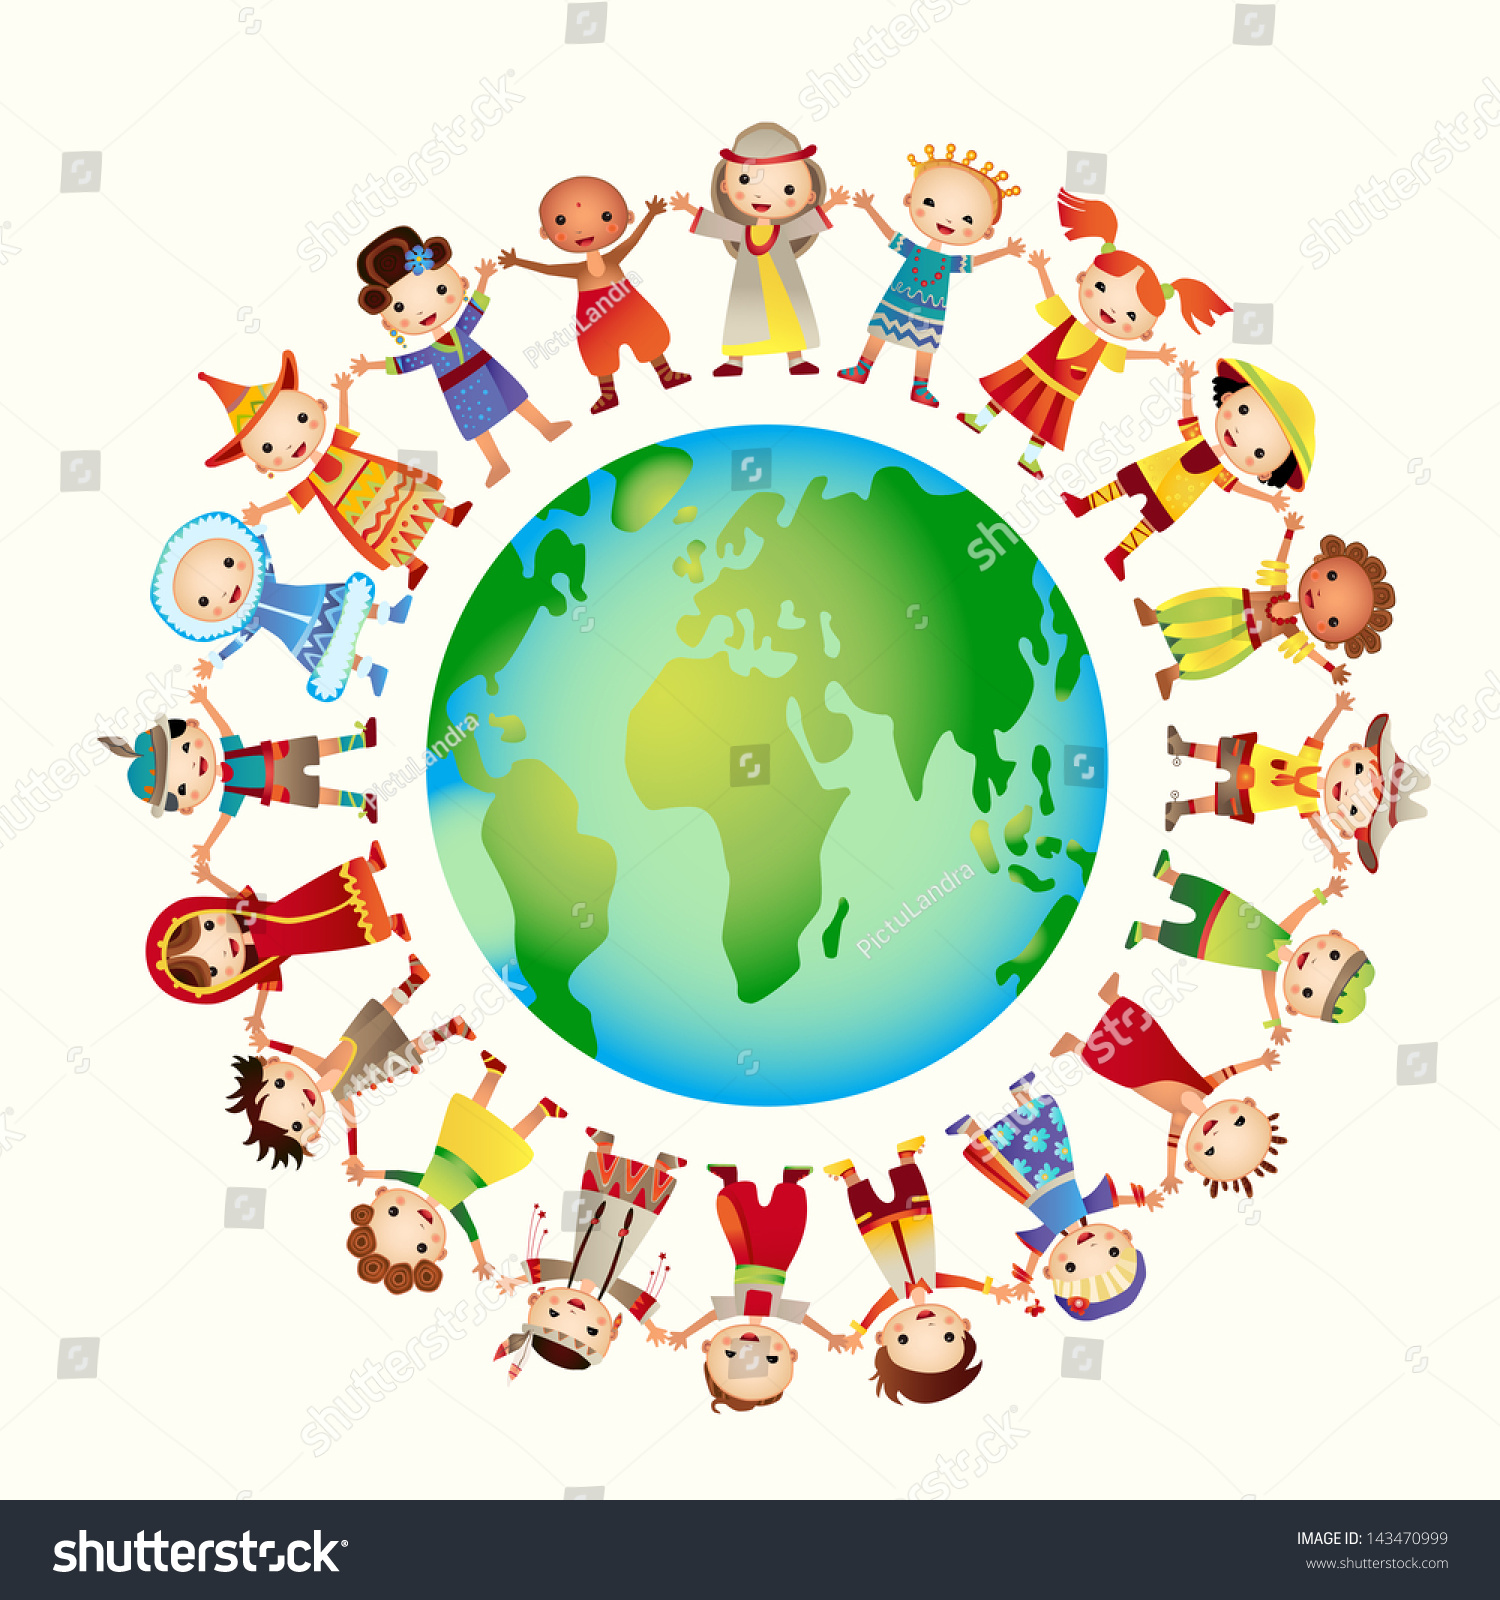 Multicultural Children On Planet Earth, Cultural Diversity ...